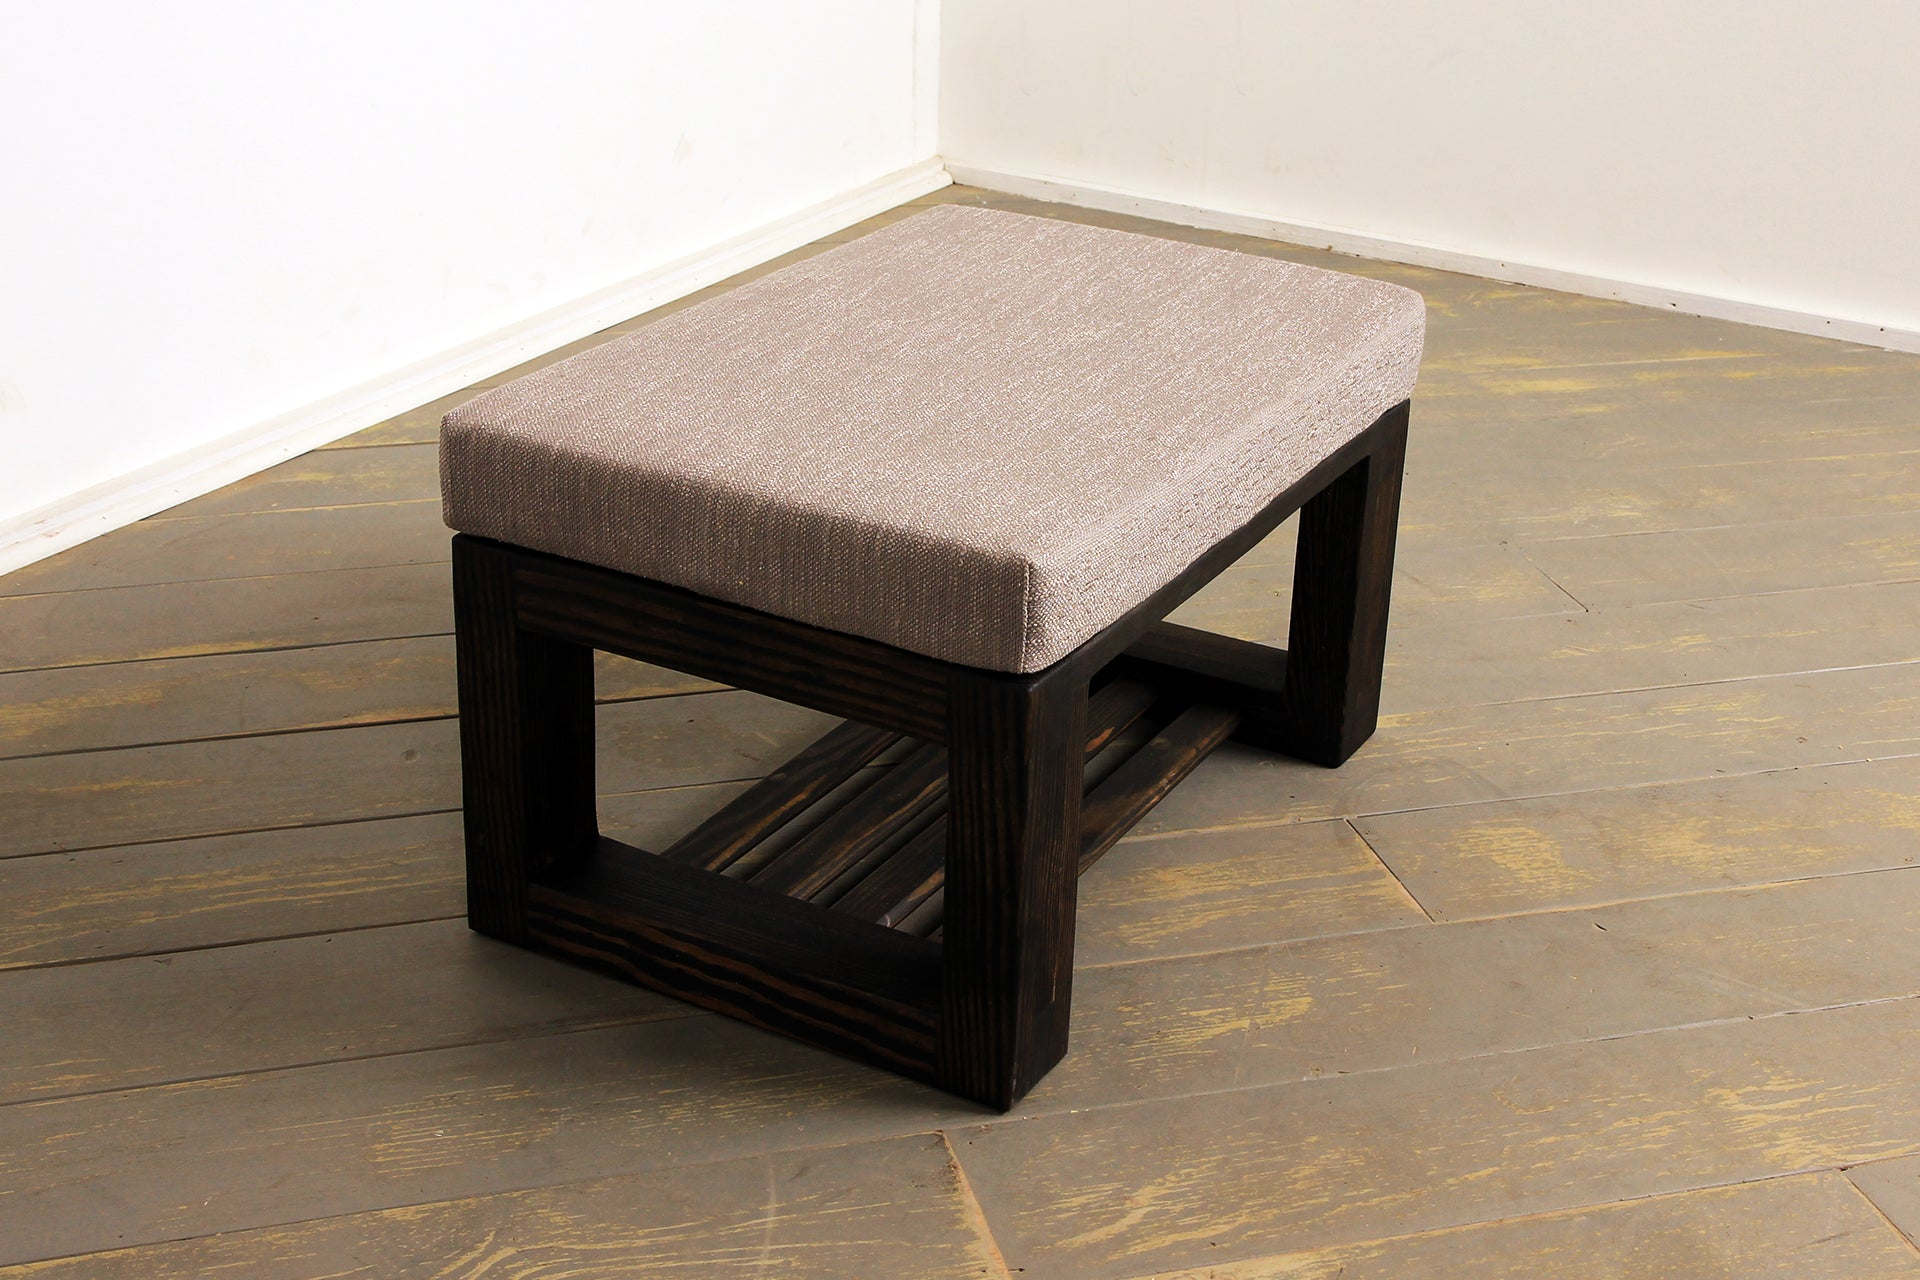 The Breathe Easy Ottoman in Whetstone and Silver